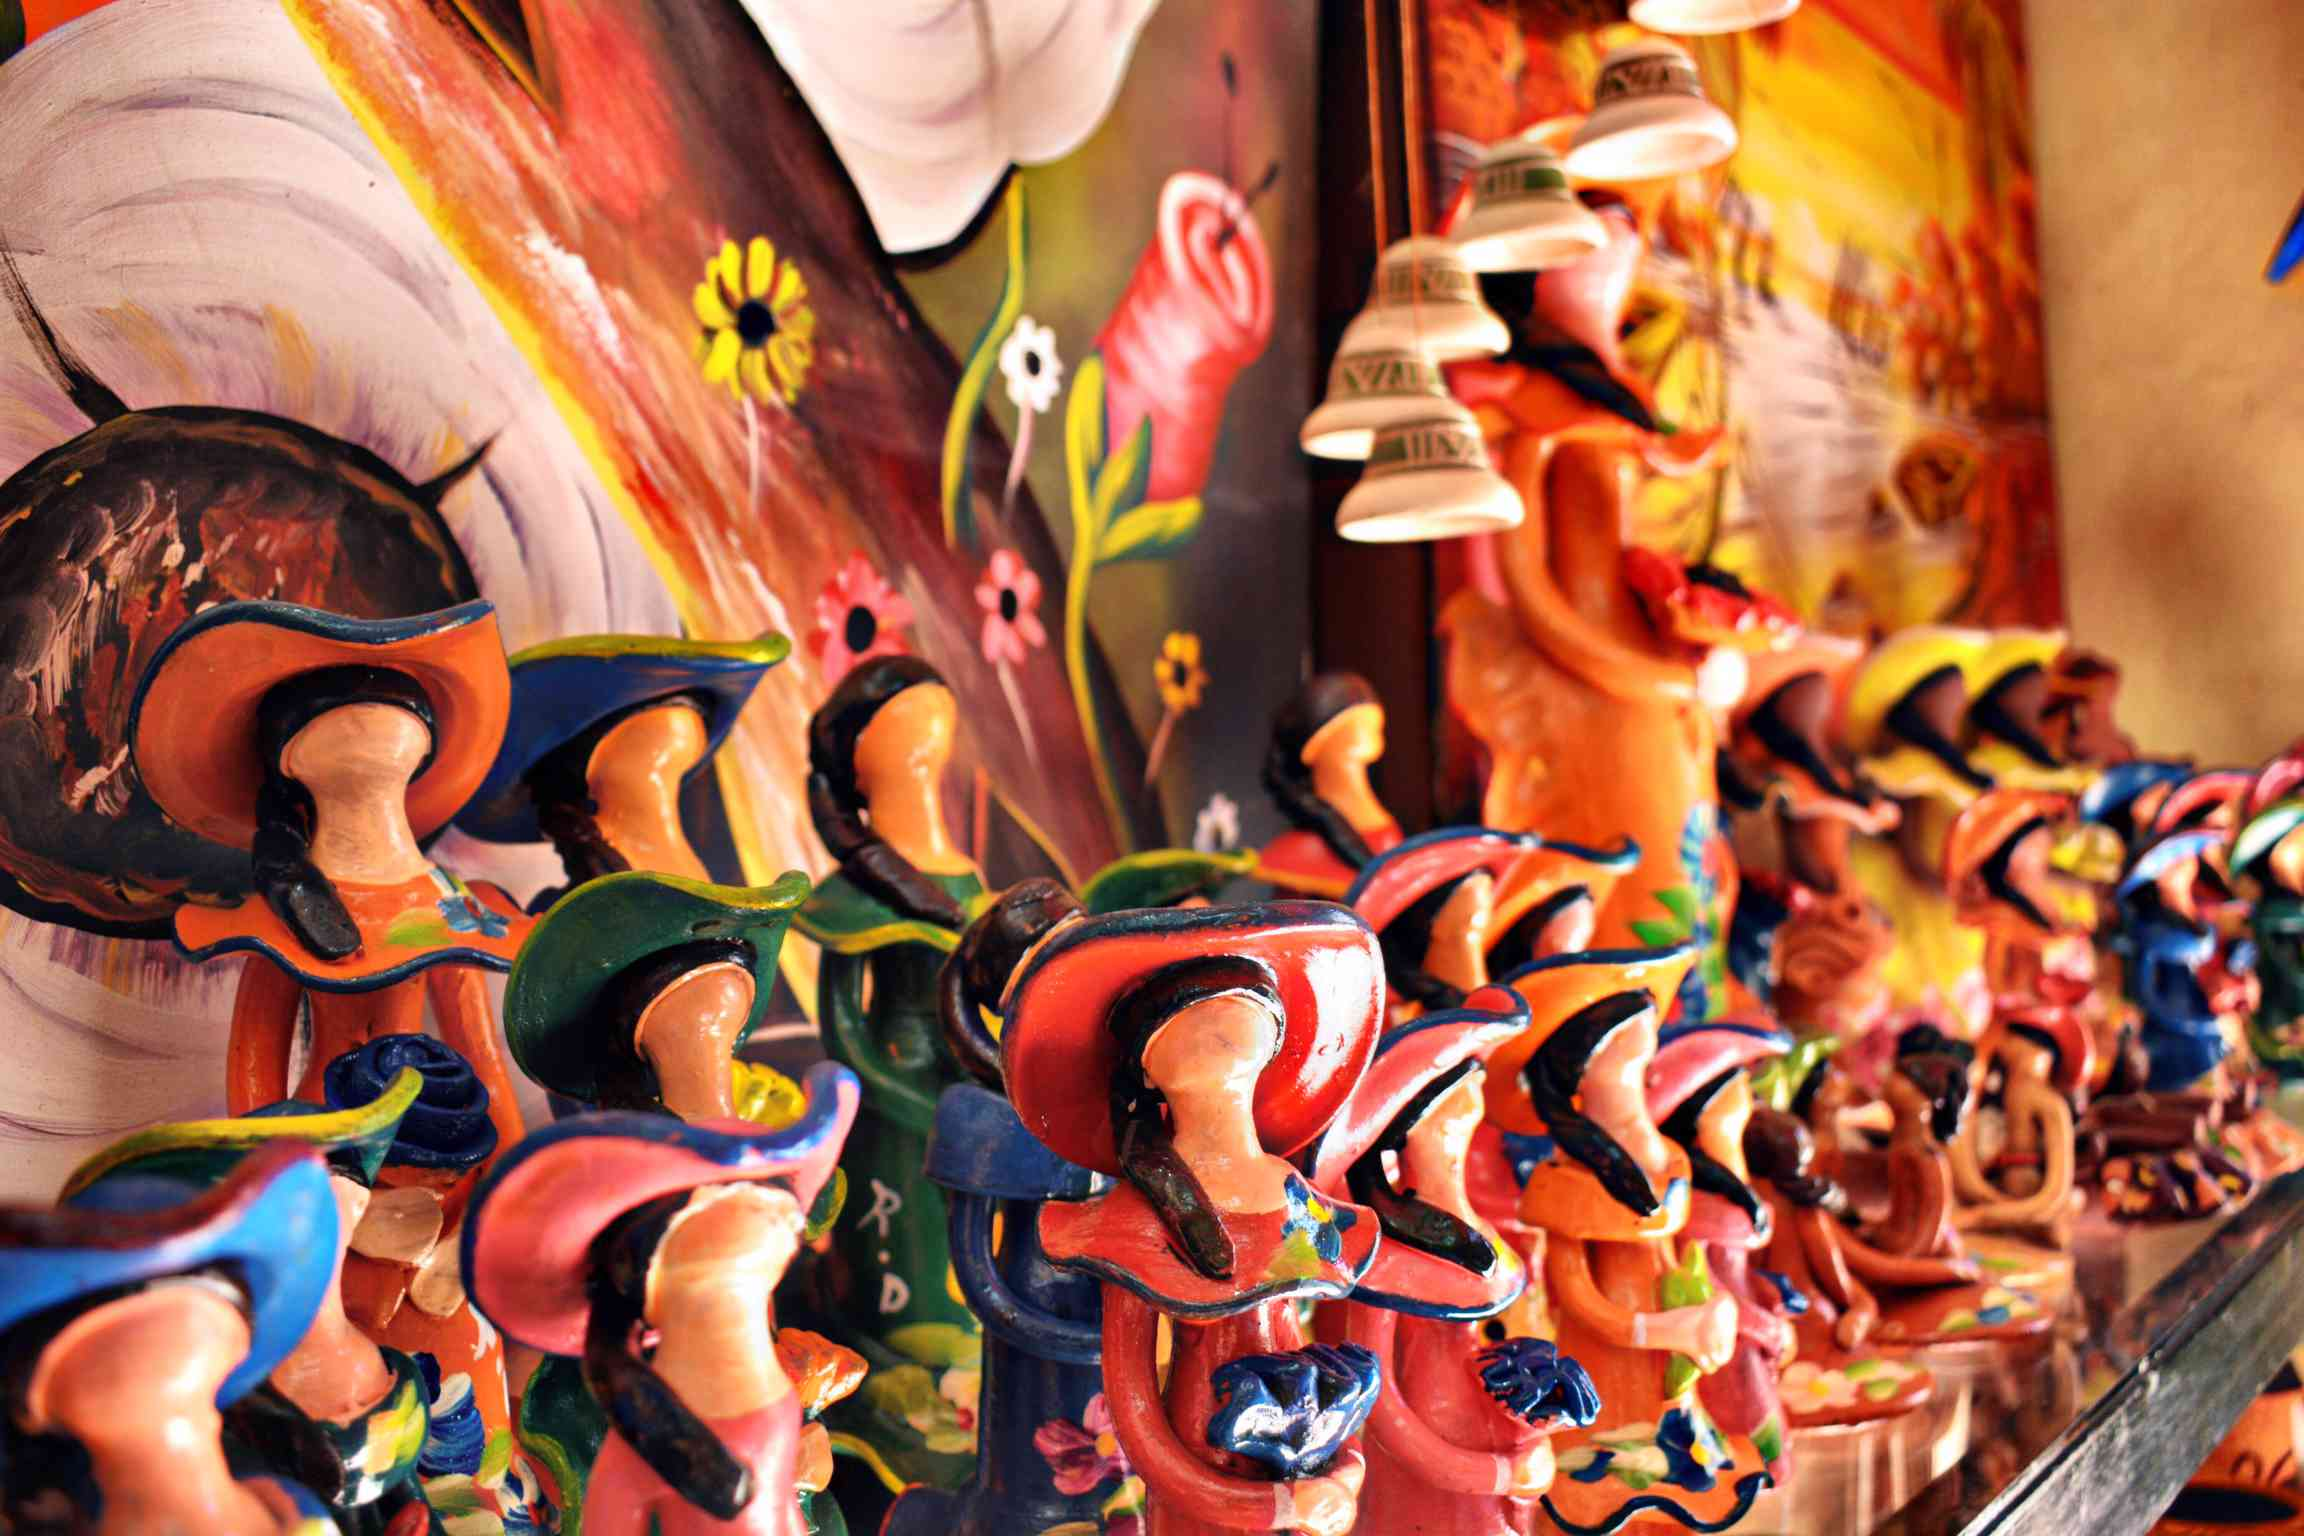 Painted figurines being sold in souvenir shops